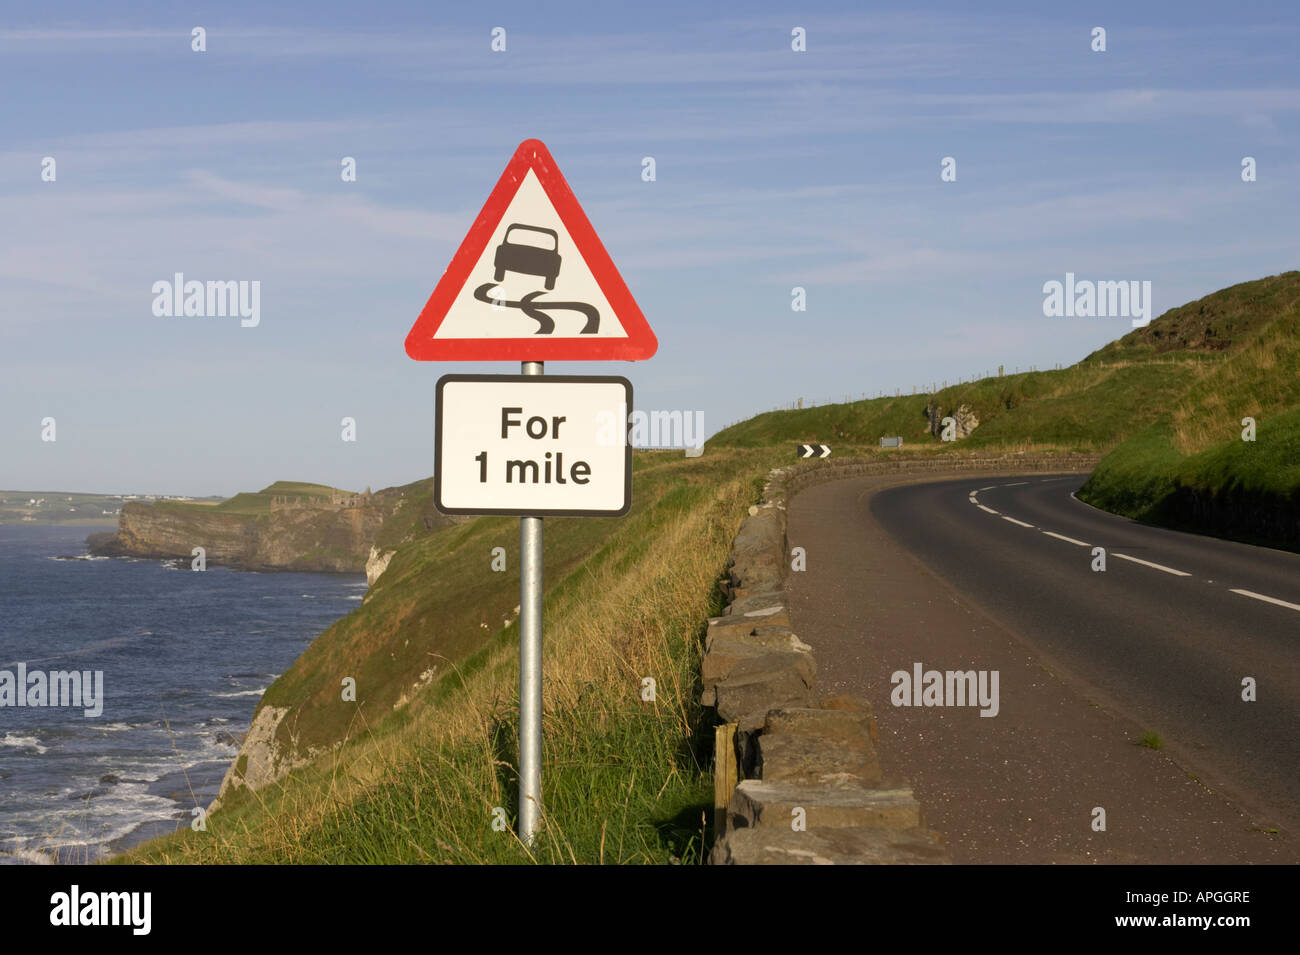 triangular red lined slippery road for one mile warning road sign on the A2 coast road near bend with Dunluce Castle in the back - Stock Image